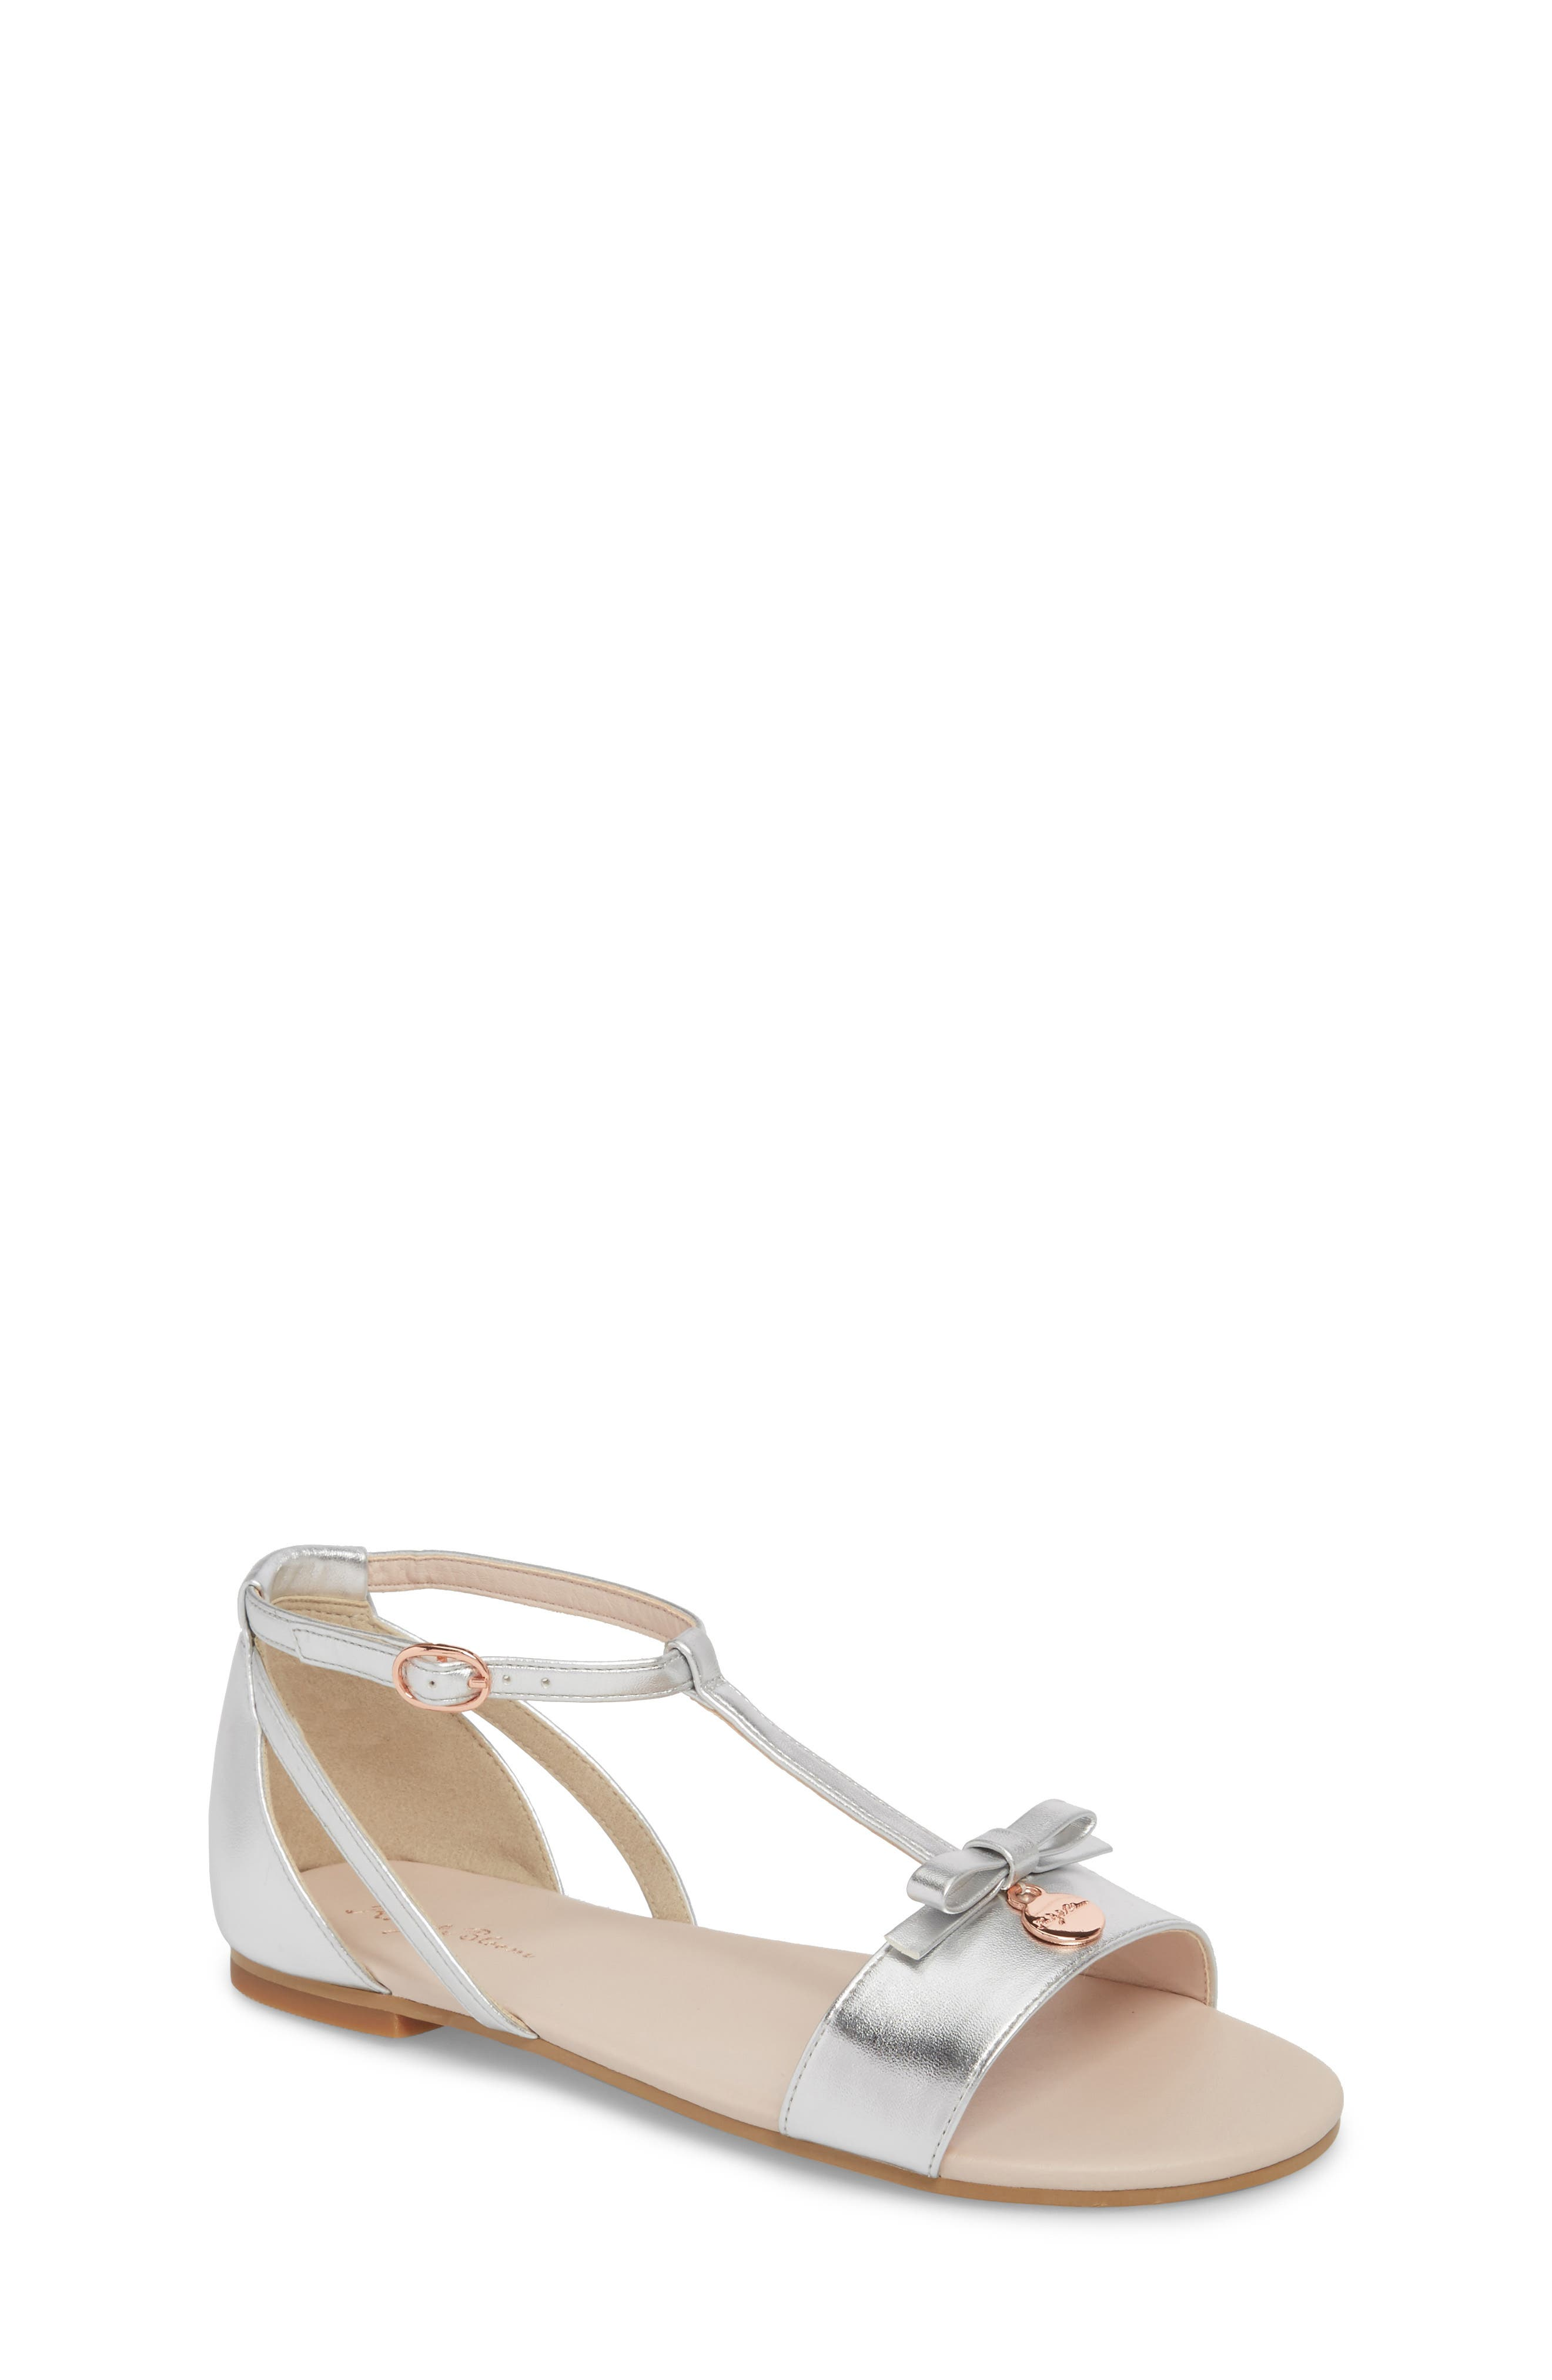 Valentina Metallic T-Strap Sandal,                         Main,                         color, Silver Faux Leather